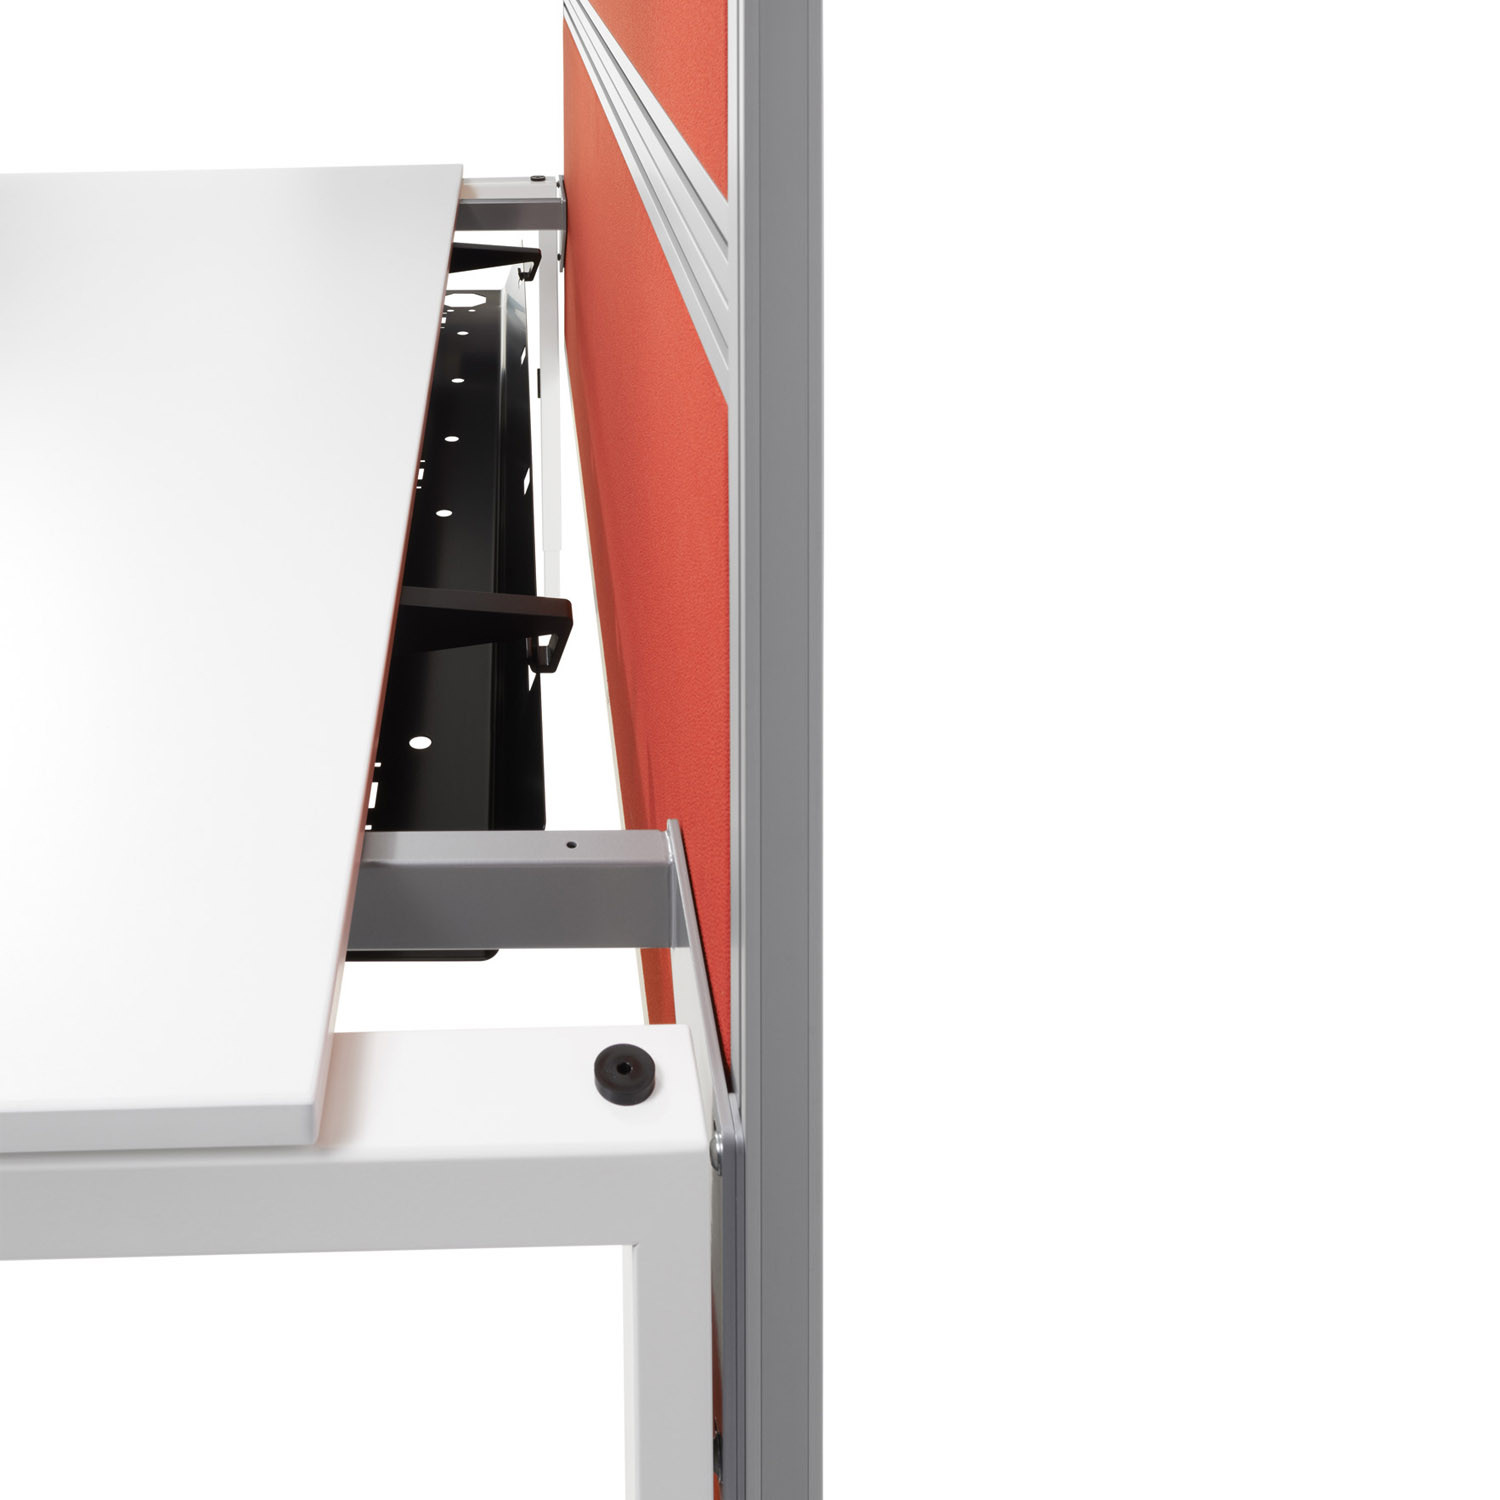 Attention 4 Adjustable Height Bench Desk